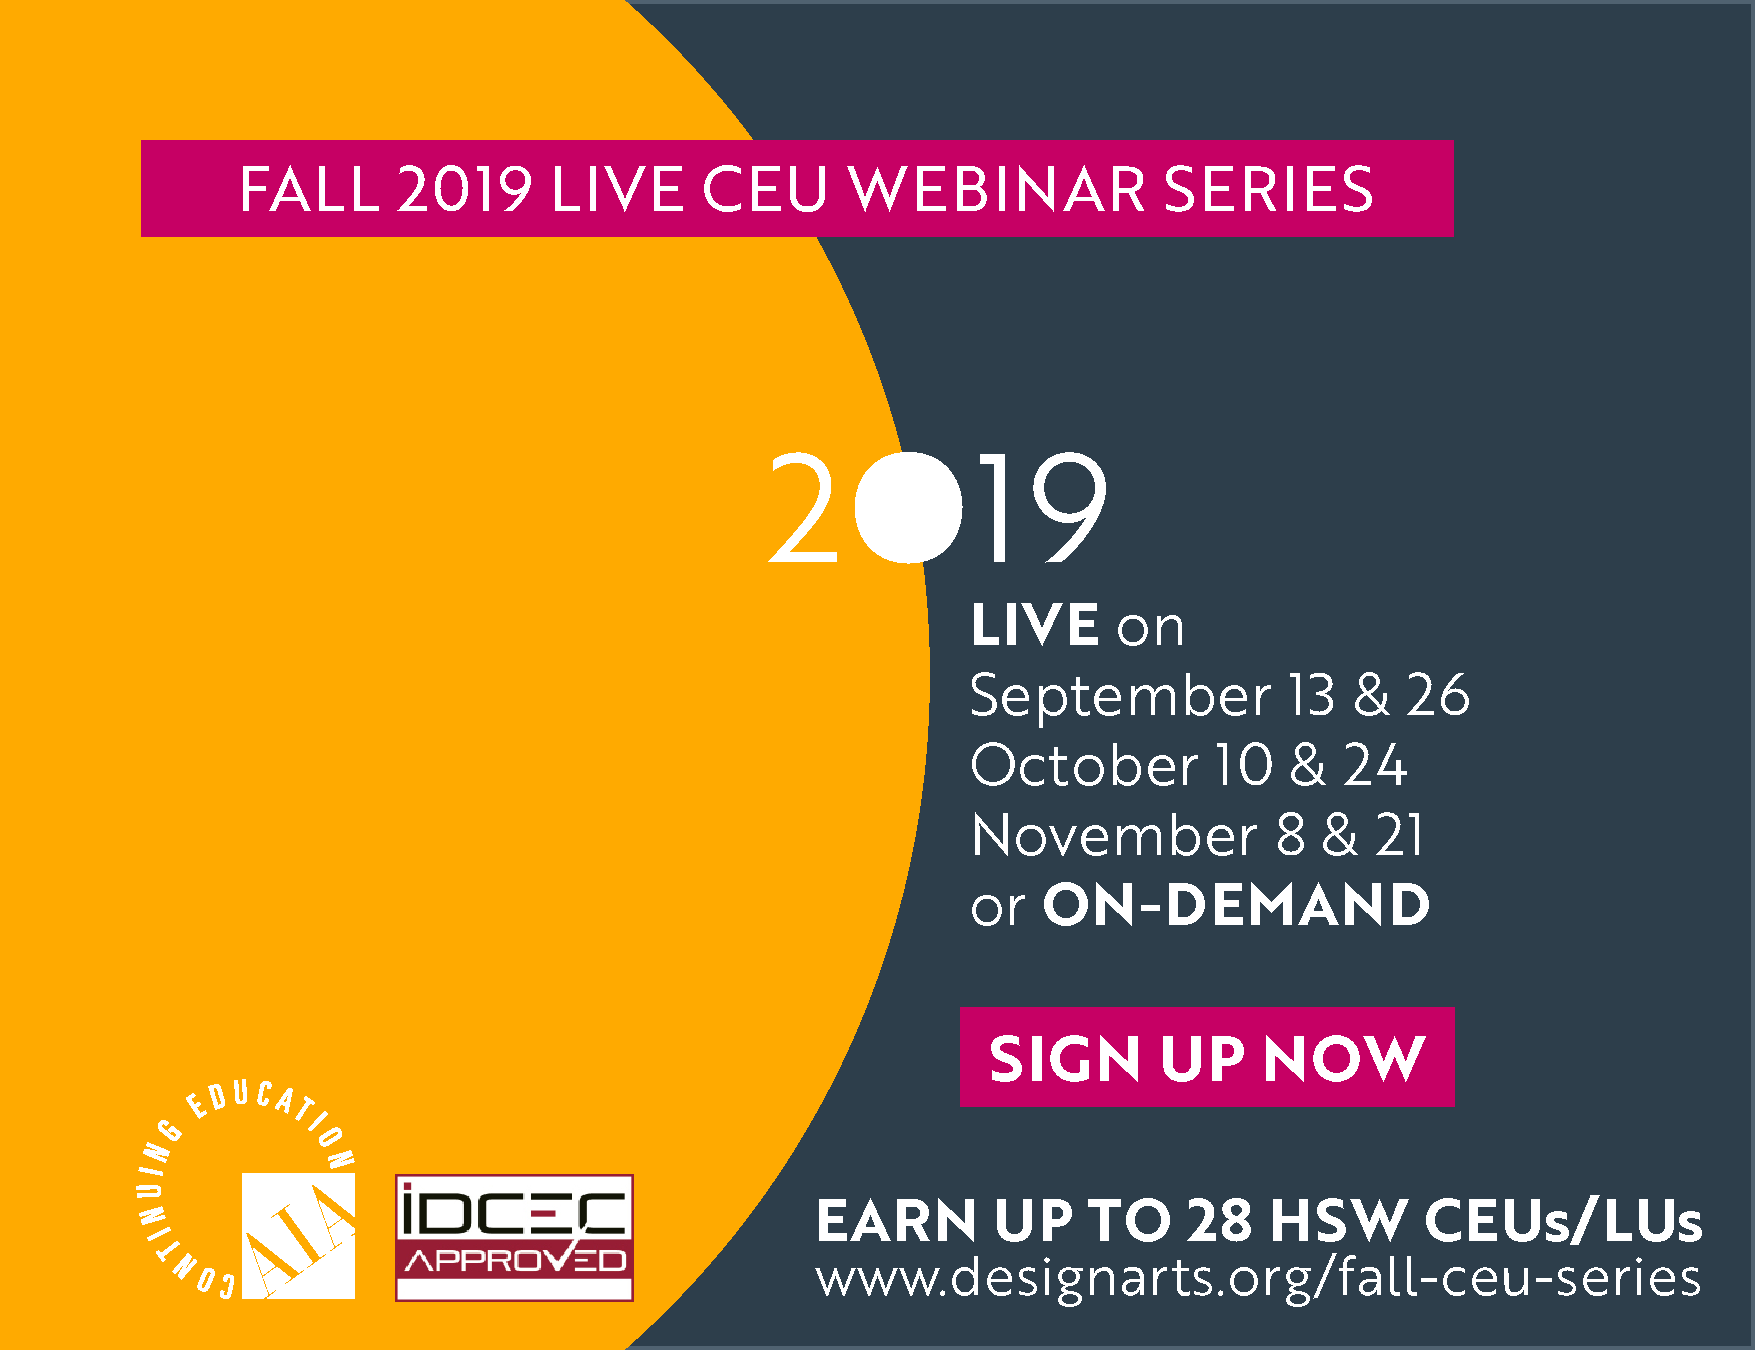 Fall 2019 Live CEU Webinar Series